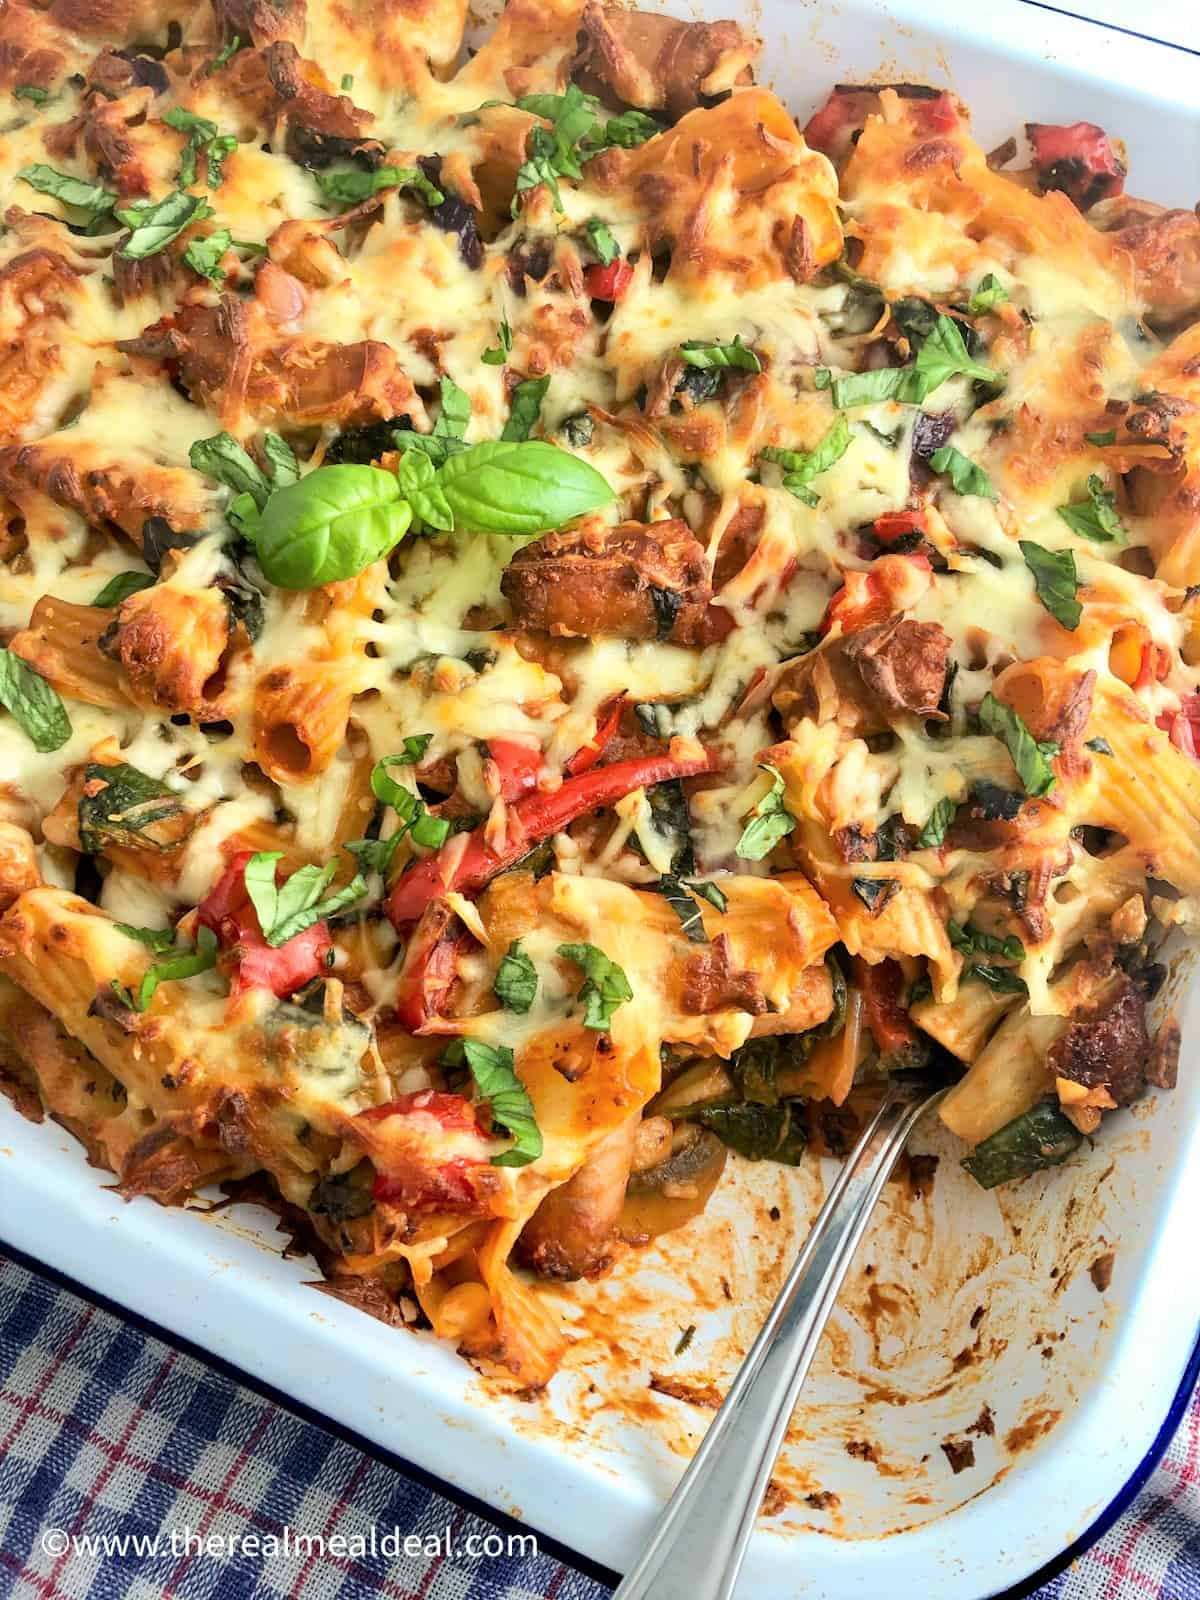 sausage pasta bake in tray 1 portion removed